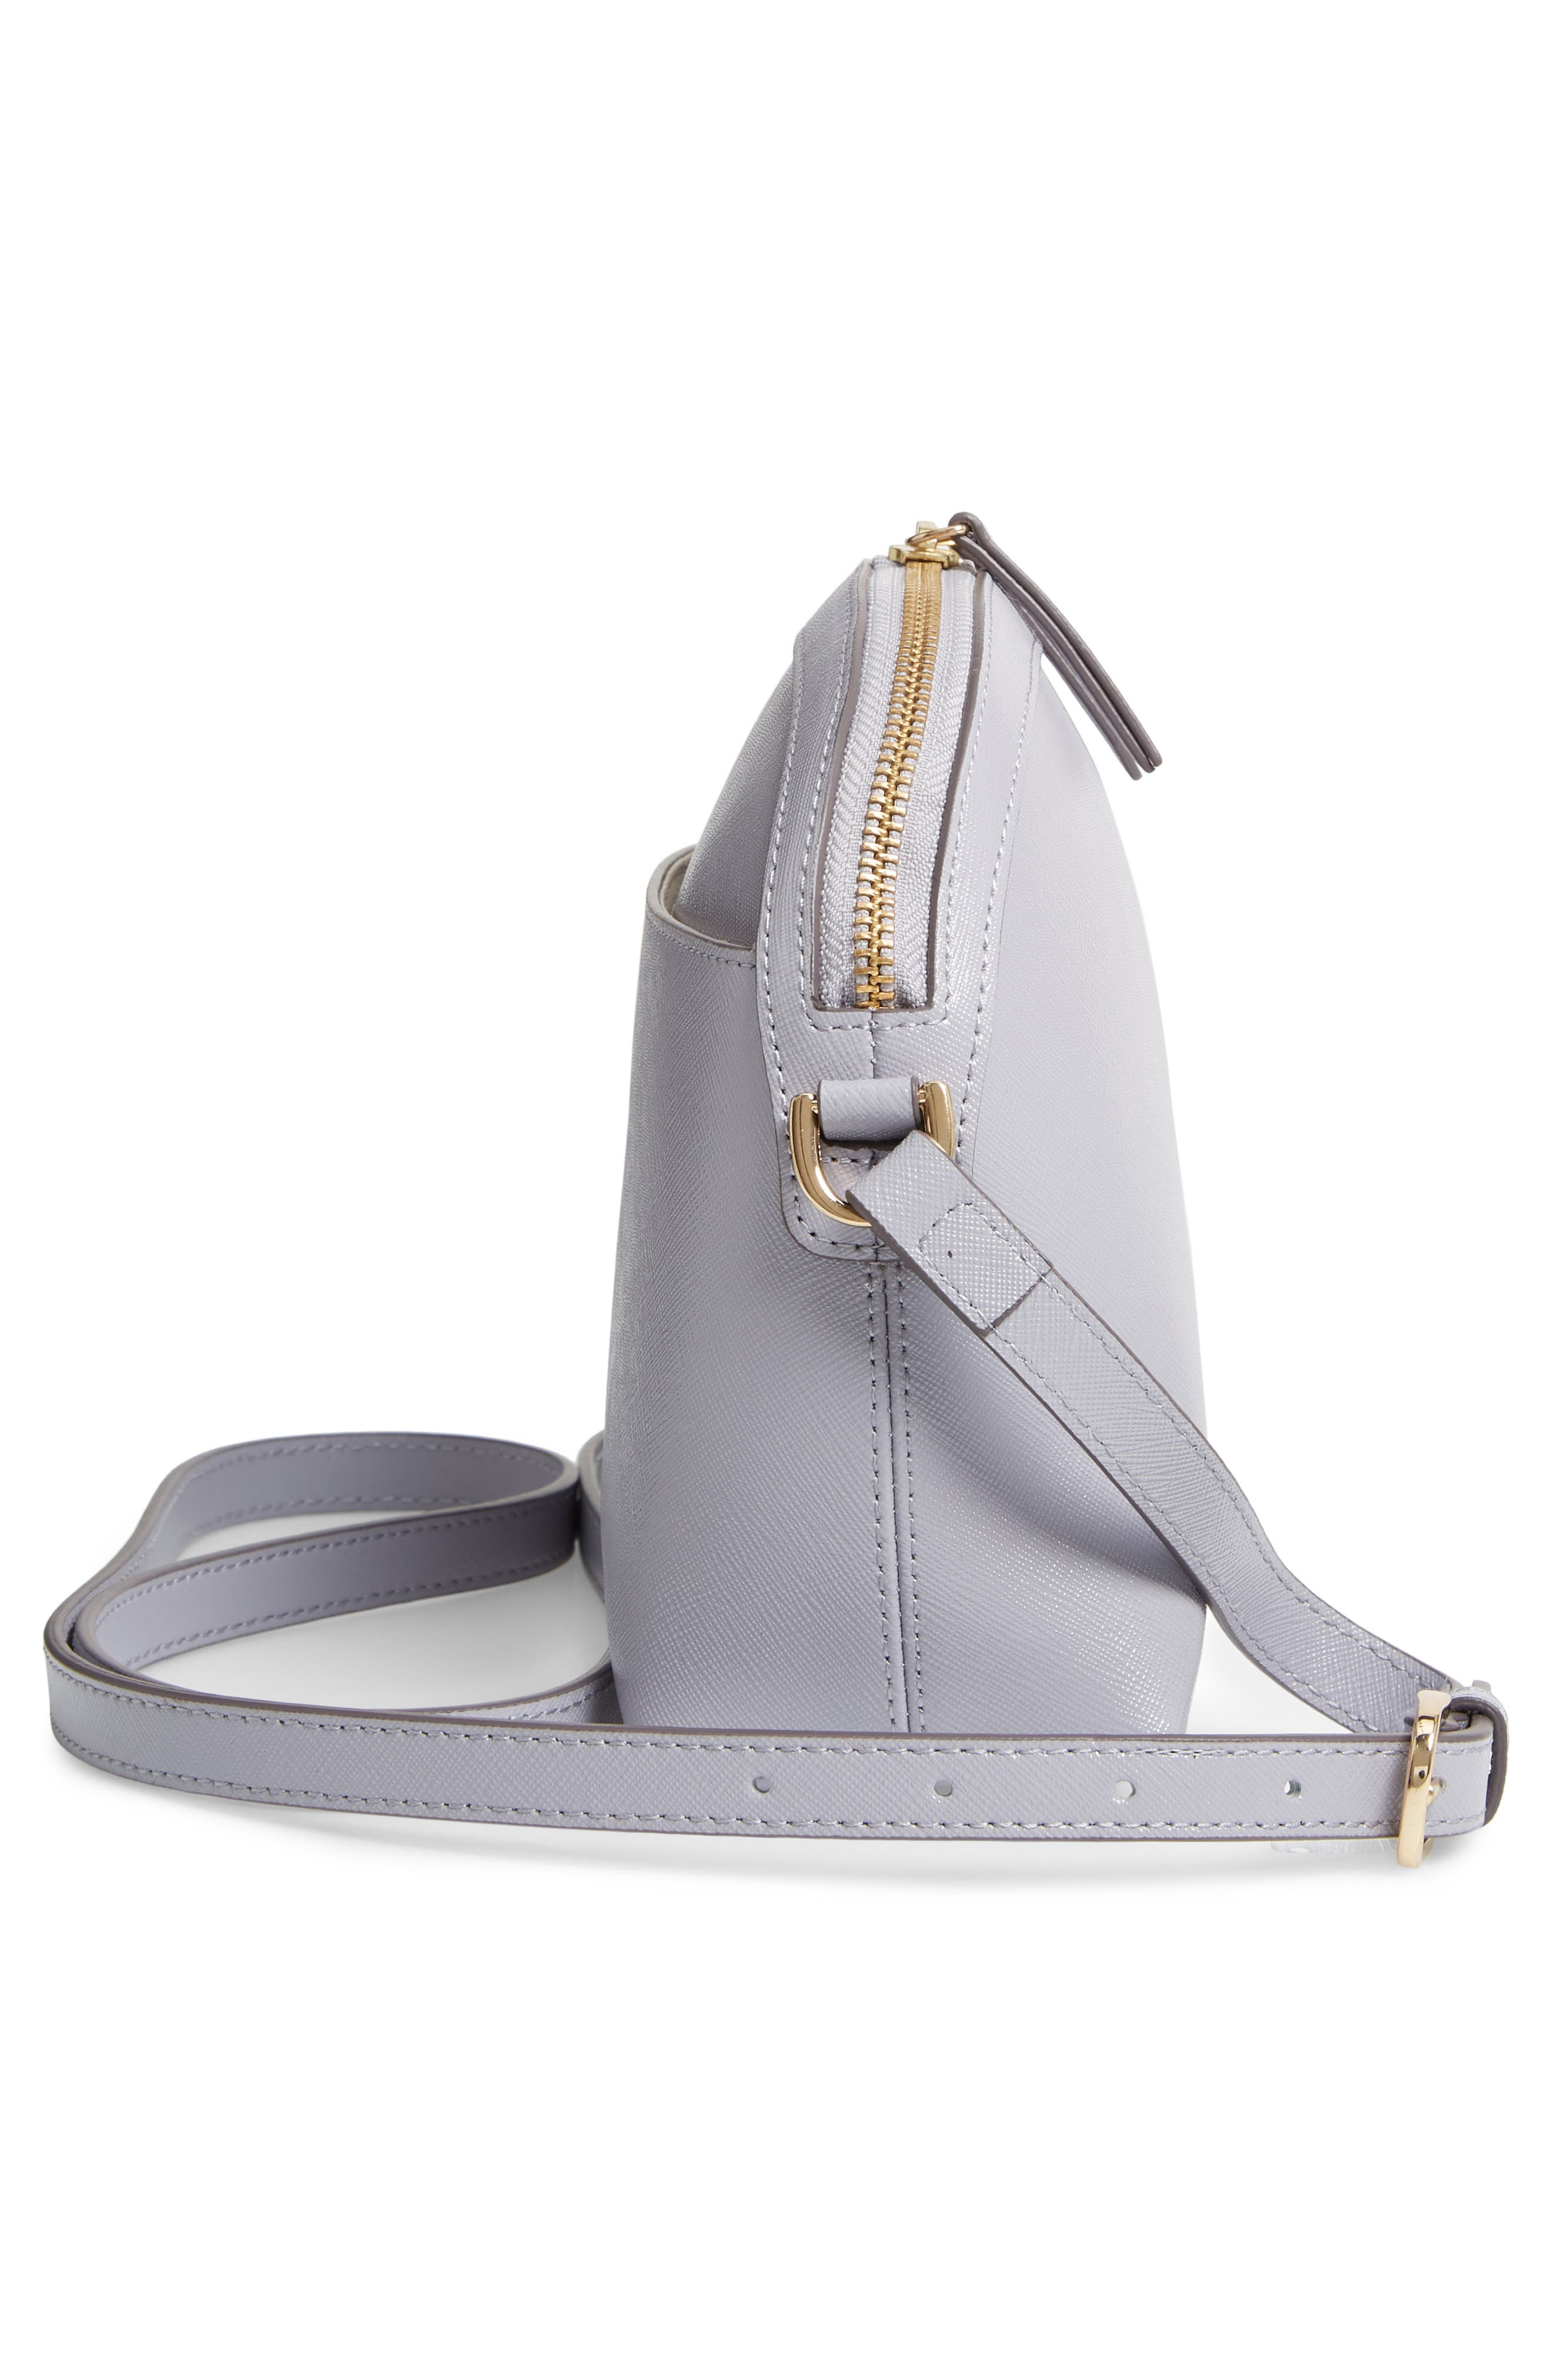 Isobel Half Moon Leather Crossbody Bag,                             Alternate thumbnail 5, color,                             GREY LILAC